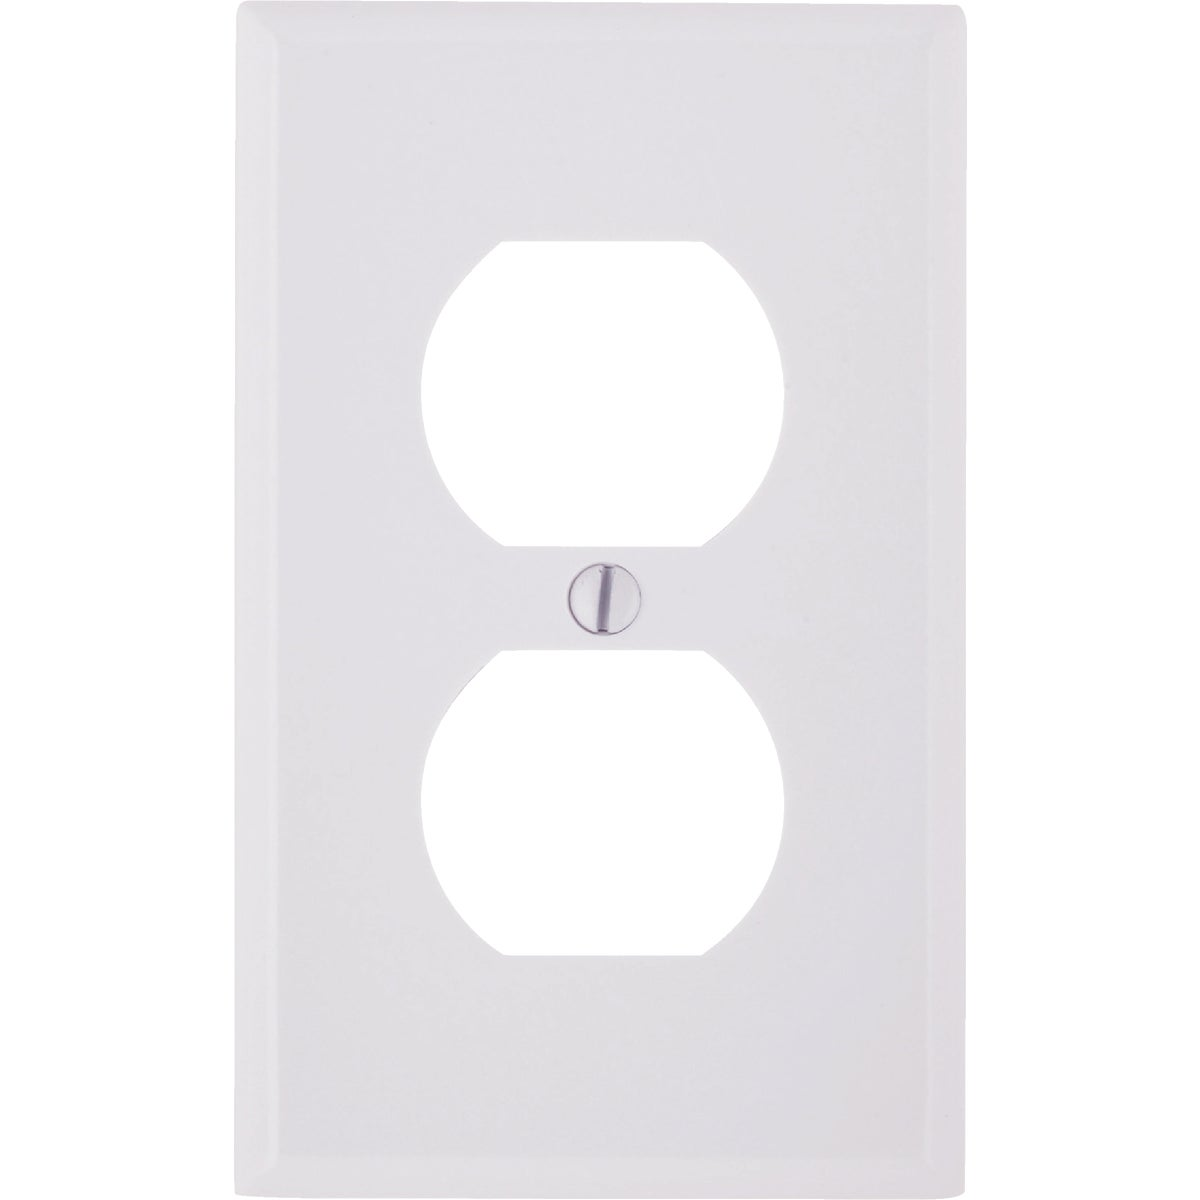 WHT 2-OUTLET WALL PLATE - 88003 by Leviton Mfg Co